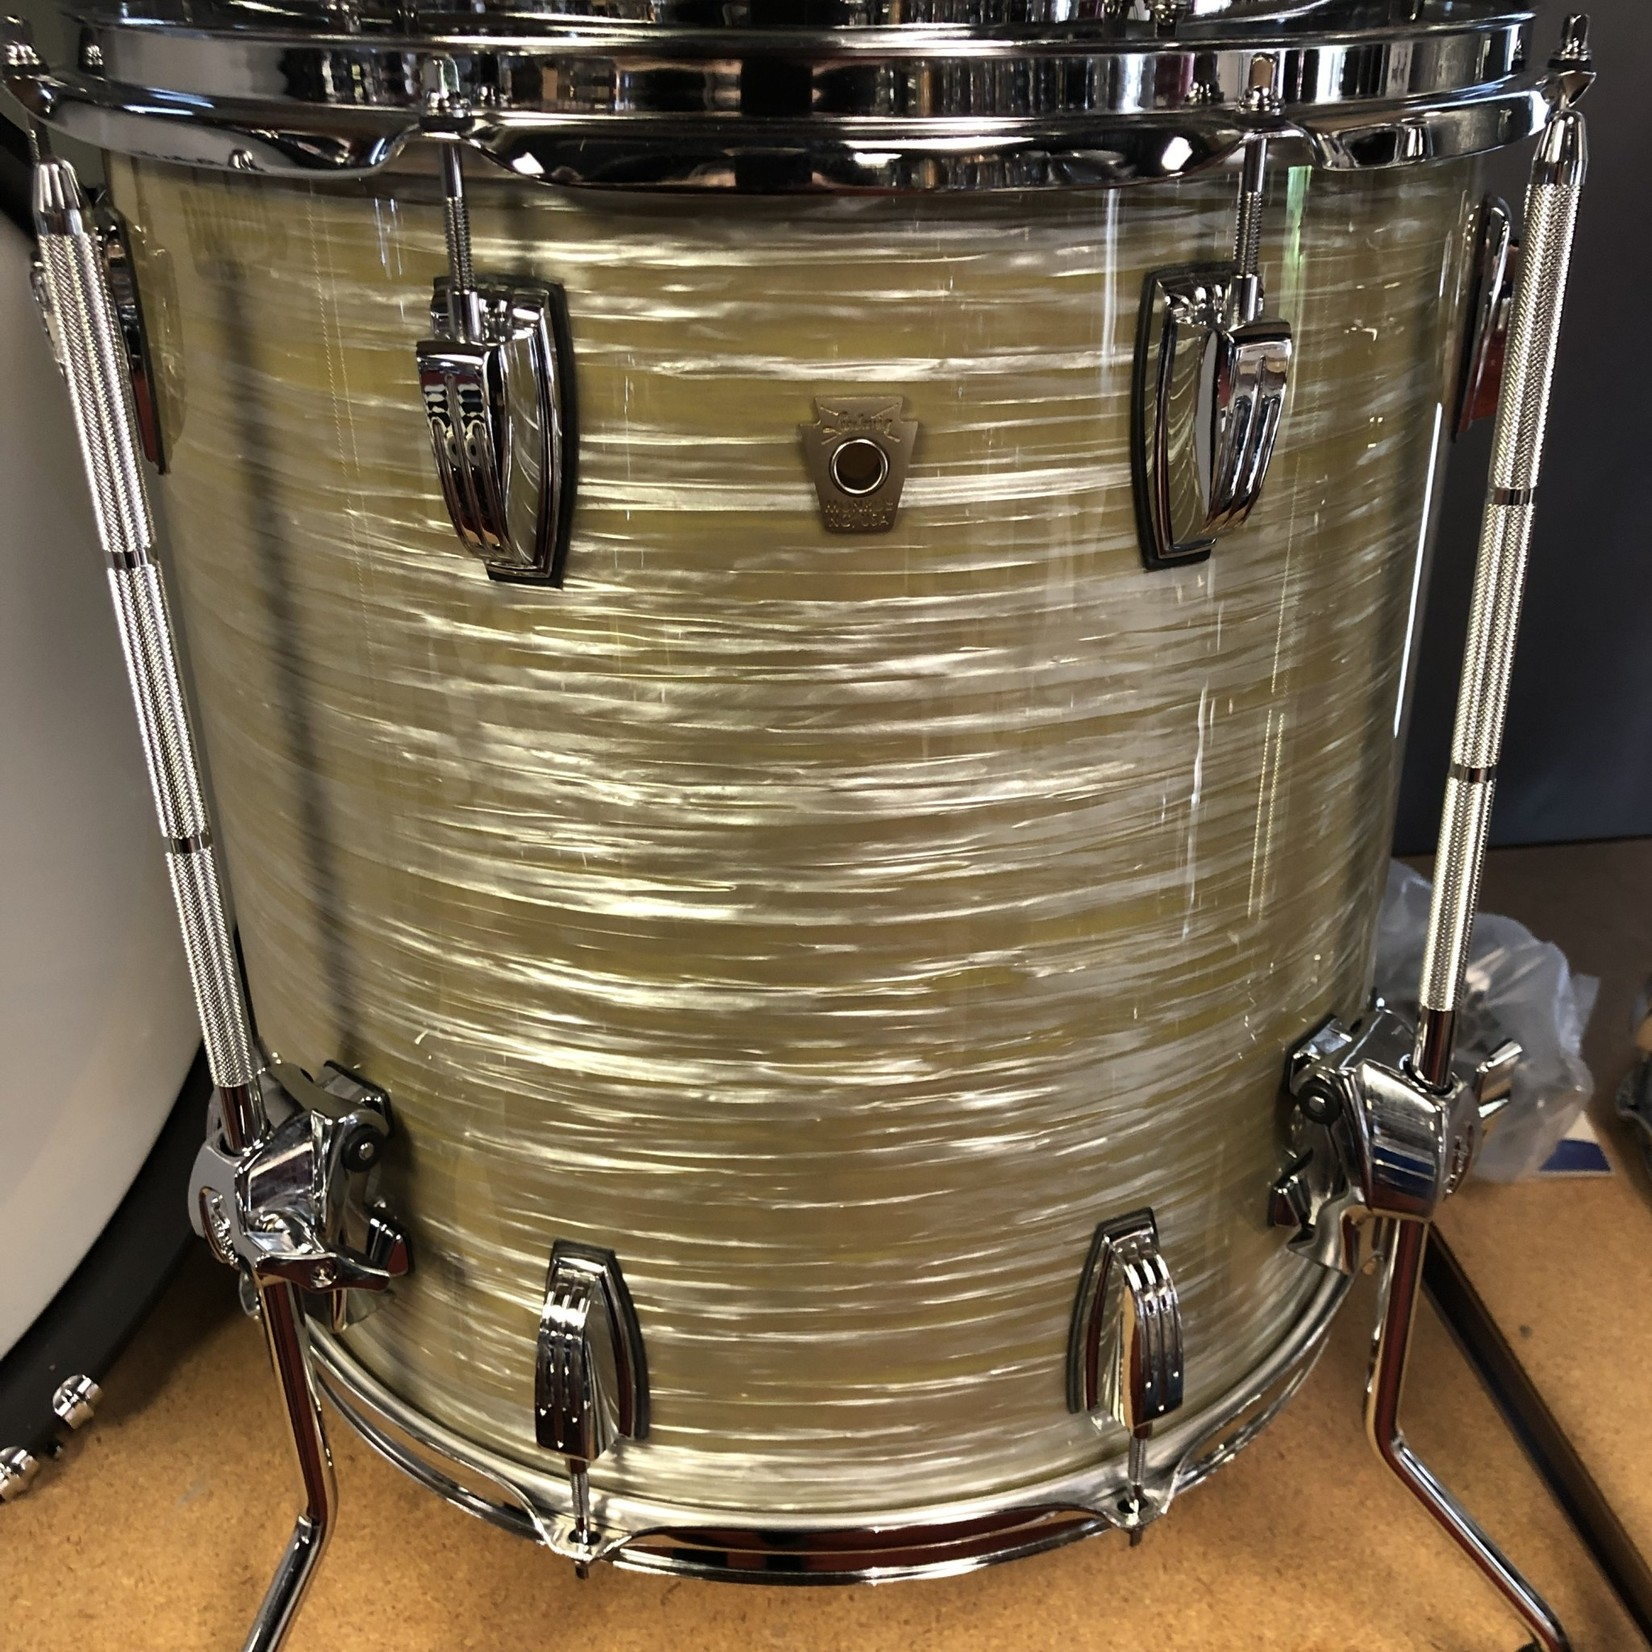 Ludwig LUDWIG CLASSIC MAPLE  FAB 3-PC SHELL PACK 13/16/22 (OLIVE OYSTER)